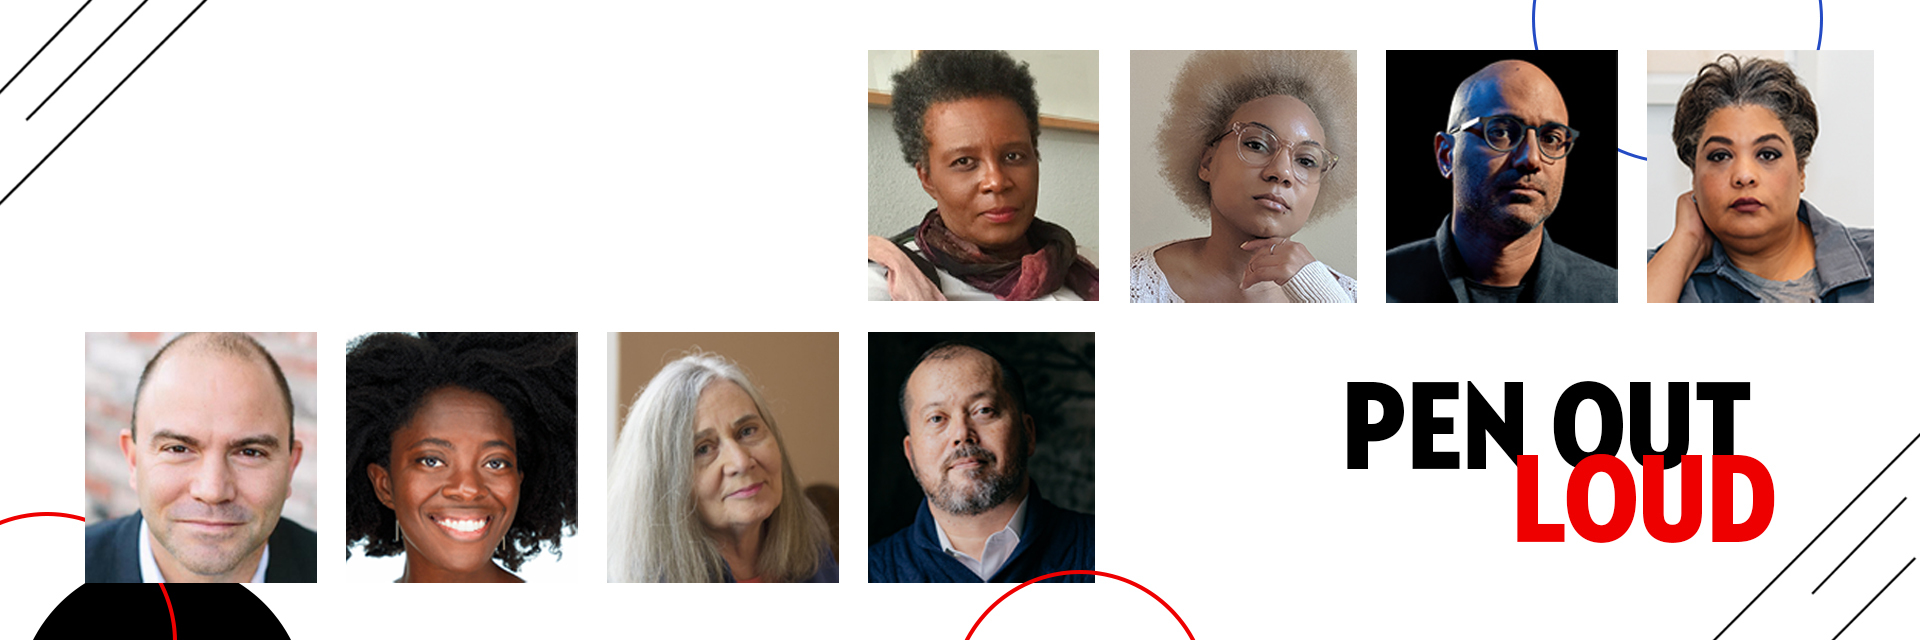 PEN Out Loud featured speakers and interlocutors. First row Claudia Rankine, Lauren Michele Jackson, Ayad Akhtar, and Roxane Gay. Second row: Beh Rhodes, Yaa Gyasi, Marilynne Robinson, and Alexander Chee.